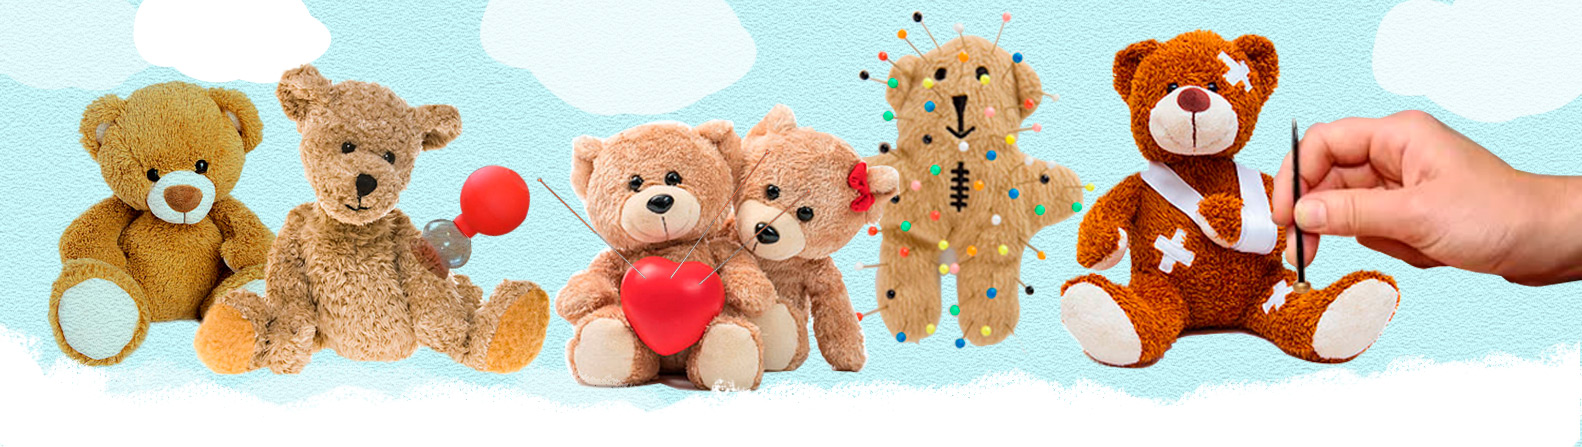 acupuncture for kids- Acupuncturist Vancouver